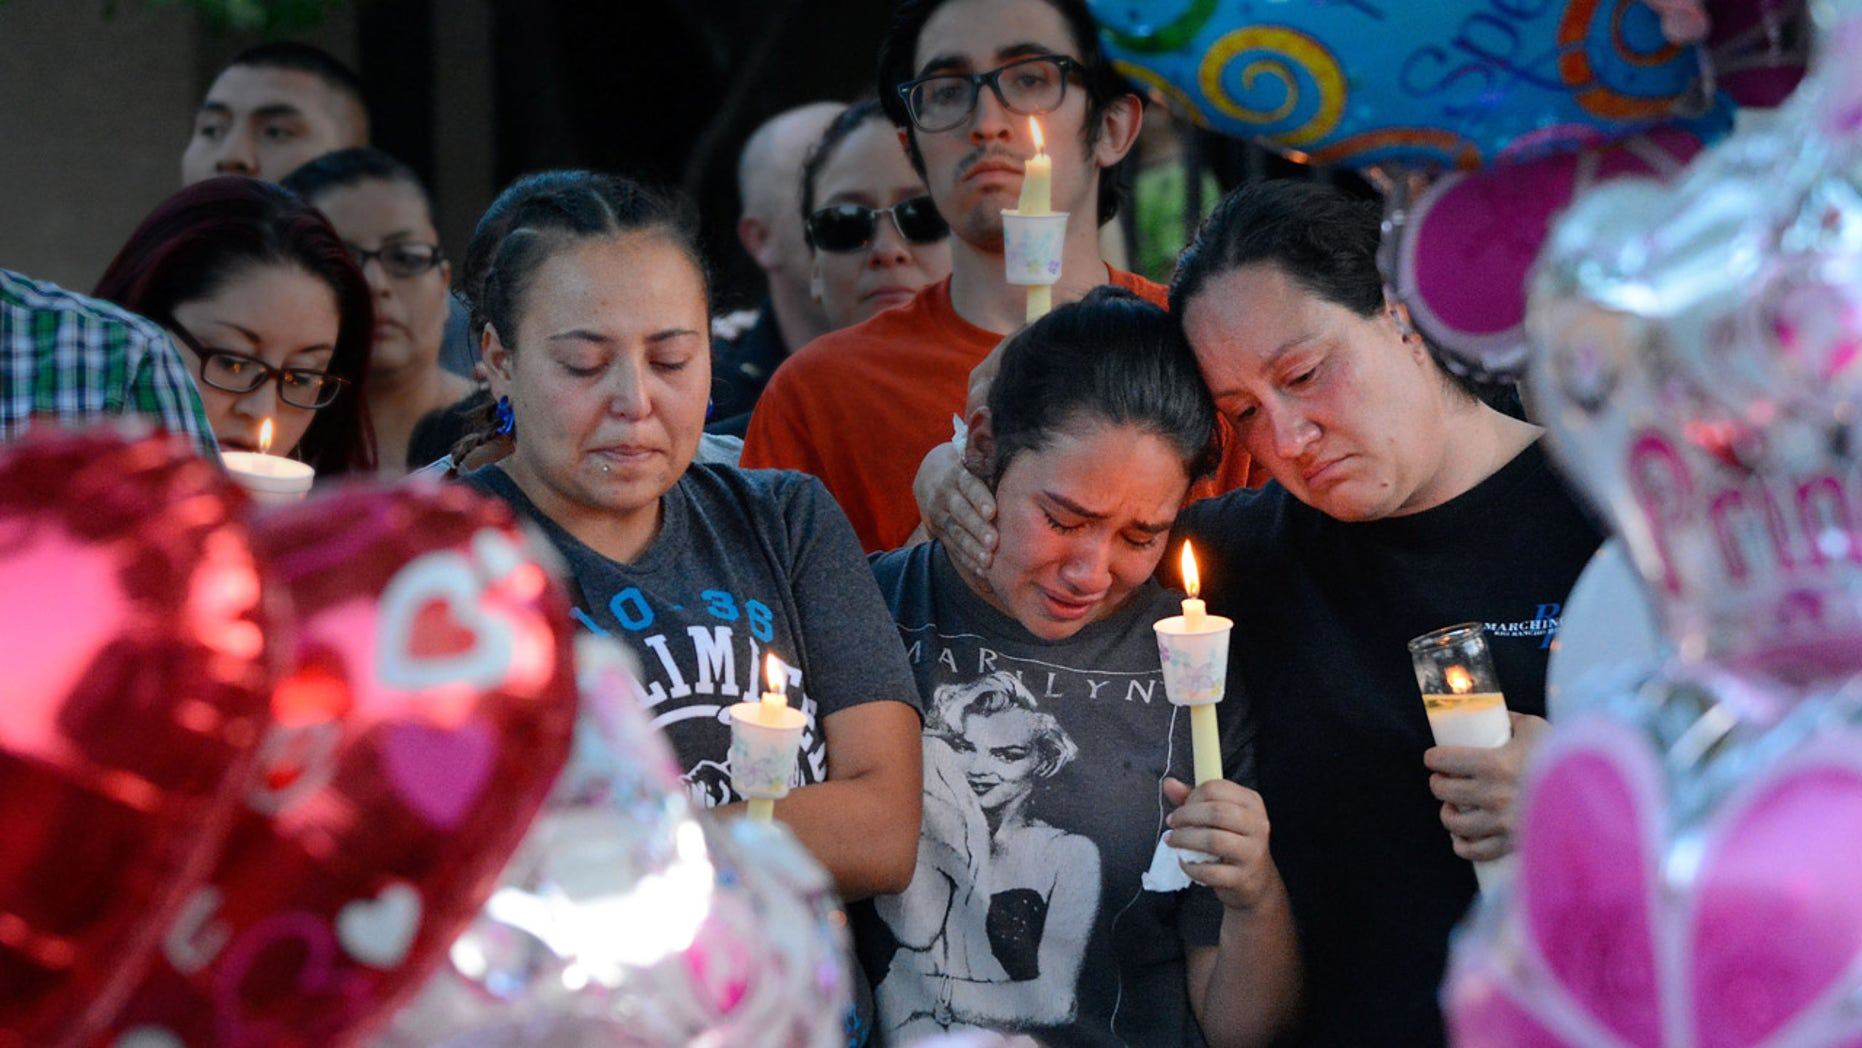 Aug. 25, 2016: Nicole Maldonado, Myriah Flores, and her mother Sharlene Benavidez attend a candlelight vigil for 10-year-old Victoria Martens at the apartment complex, in Albuquerque, N.M., where the young girl lived and was killed.